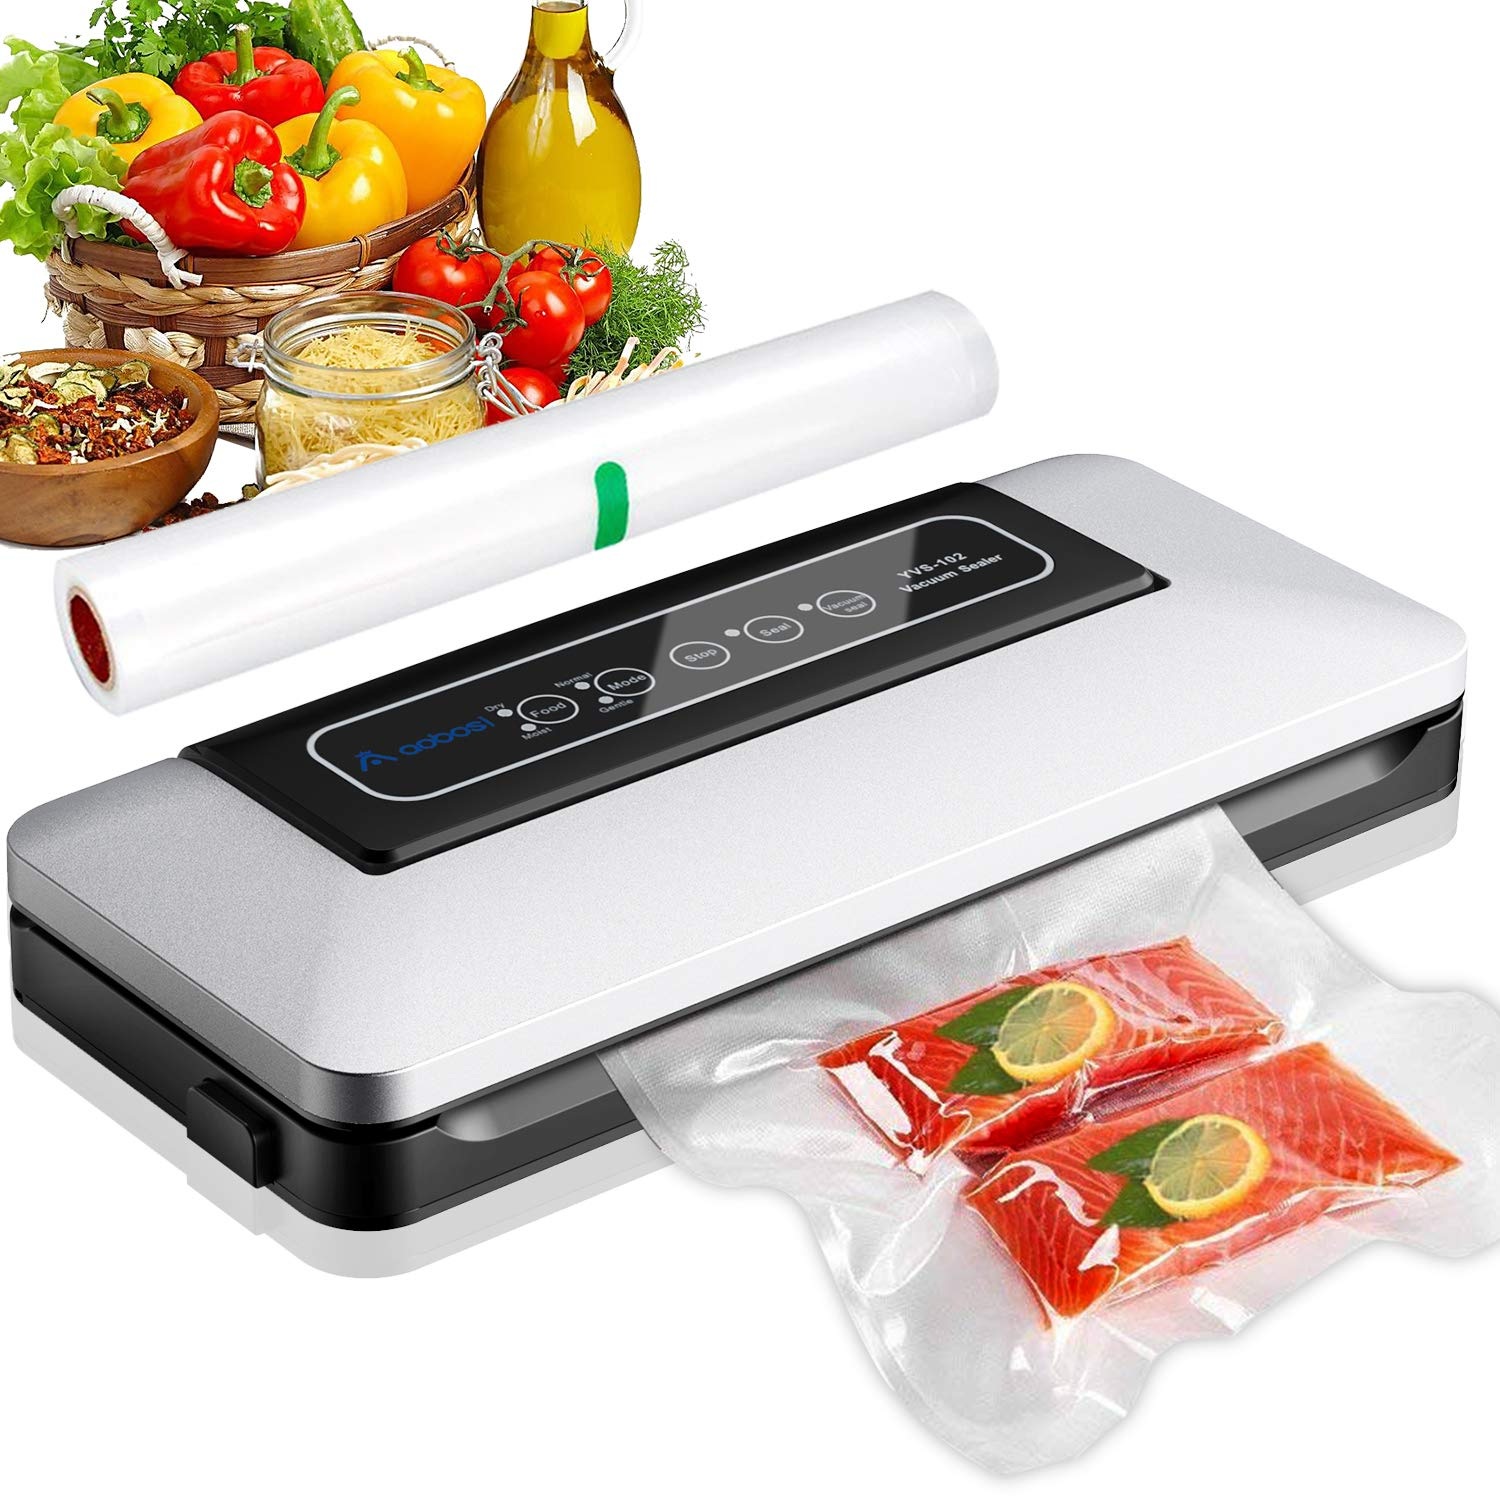 Aobosi Vacuum Sealer /5 In 1 Automatic Food Sealer Machine for Food Saver and Preservation with Dry&Moist Modes for Sous Vide,Led Indicator Lights& ...